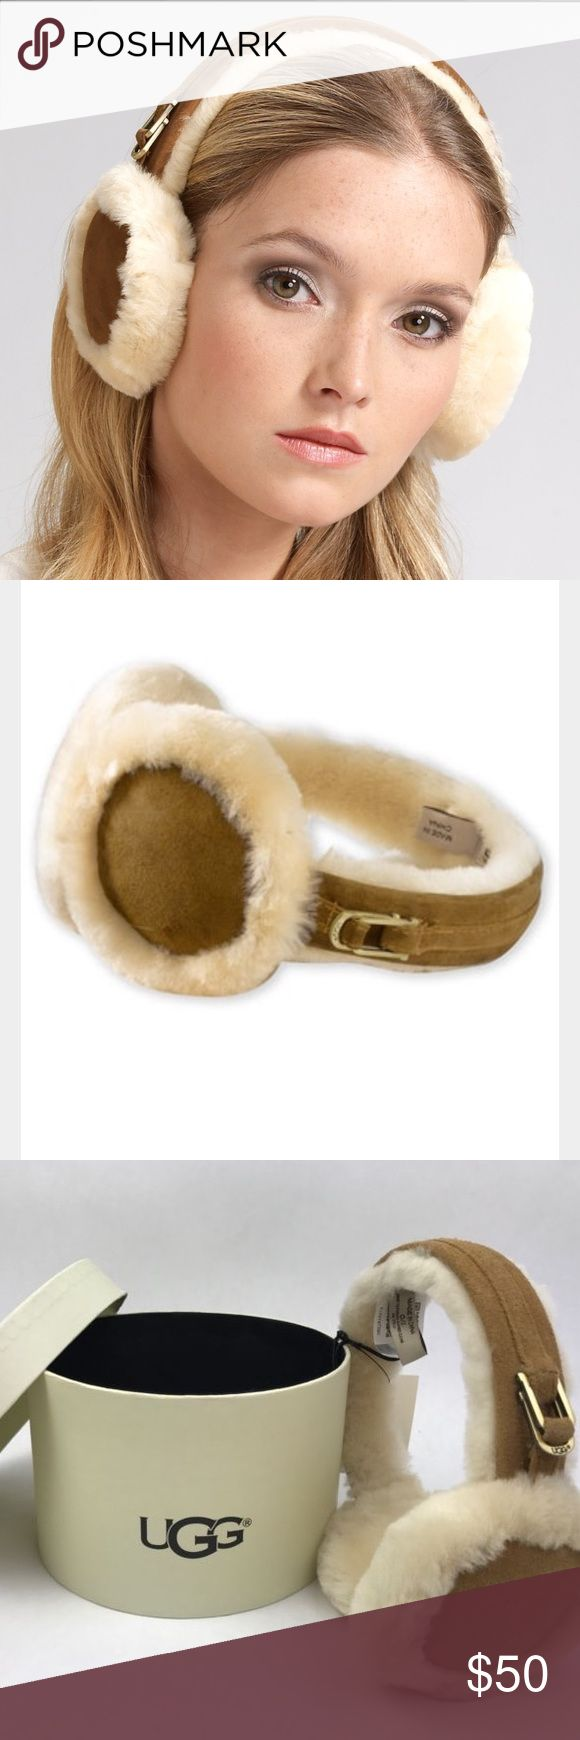 """UGG Australia Women's Earmuffs in Chestnut - New The women's UGG® Classic Sheepskin Earmuffs are the perfect fashionable winter accessory. With genuine sheepskin lining and unique hardware they give you both comfort and style.  •Materials: SHEEPSKIN •Description: Exposed Sheepskin, """"U"""" Logo Charm •This product contains real fur from Sheep or Lamb •Fur Origin: Australia, UK, Ireland or United States •Real Fur has been artificially dyed and treated •By UGG UGG Accessories Hats"""